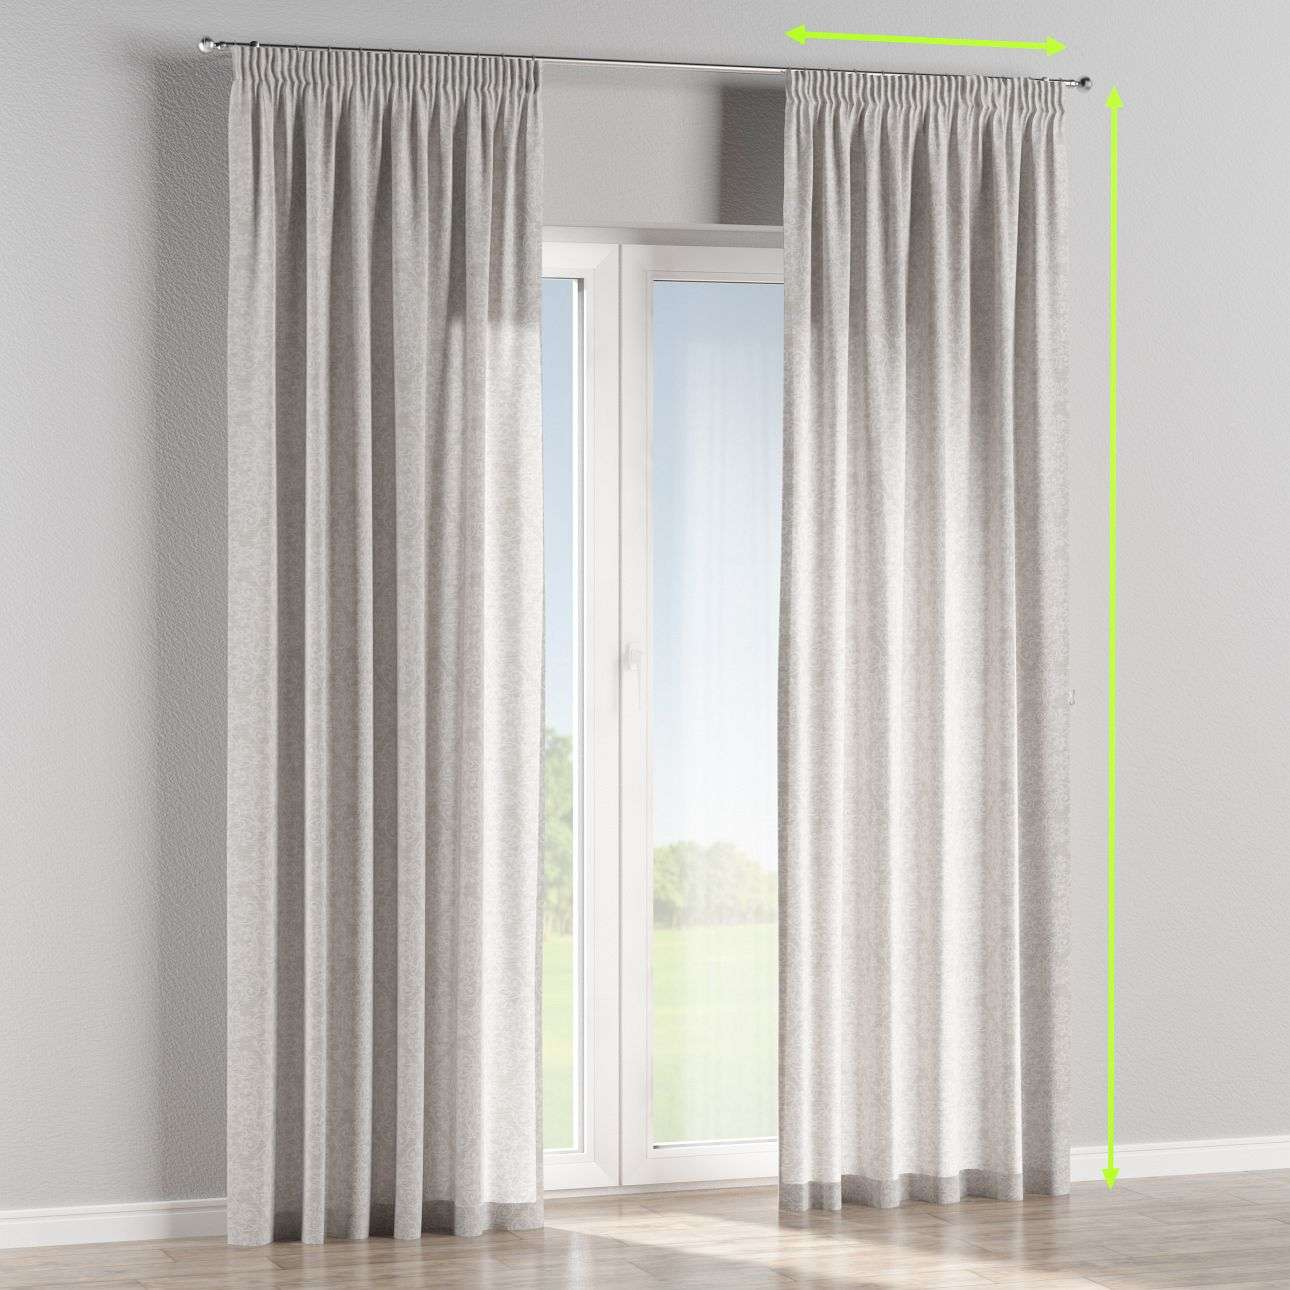 Pencil pleat curtains in collection Venice, fabric: 140-49